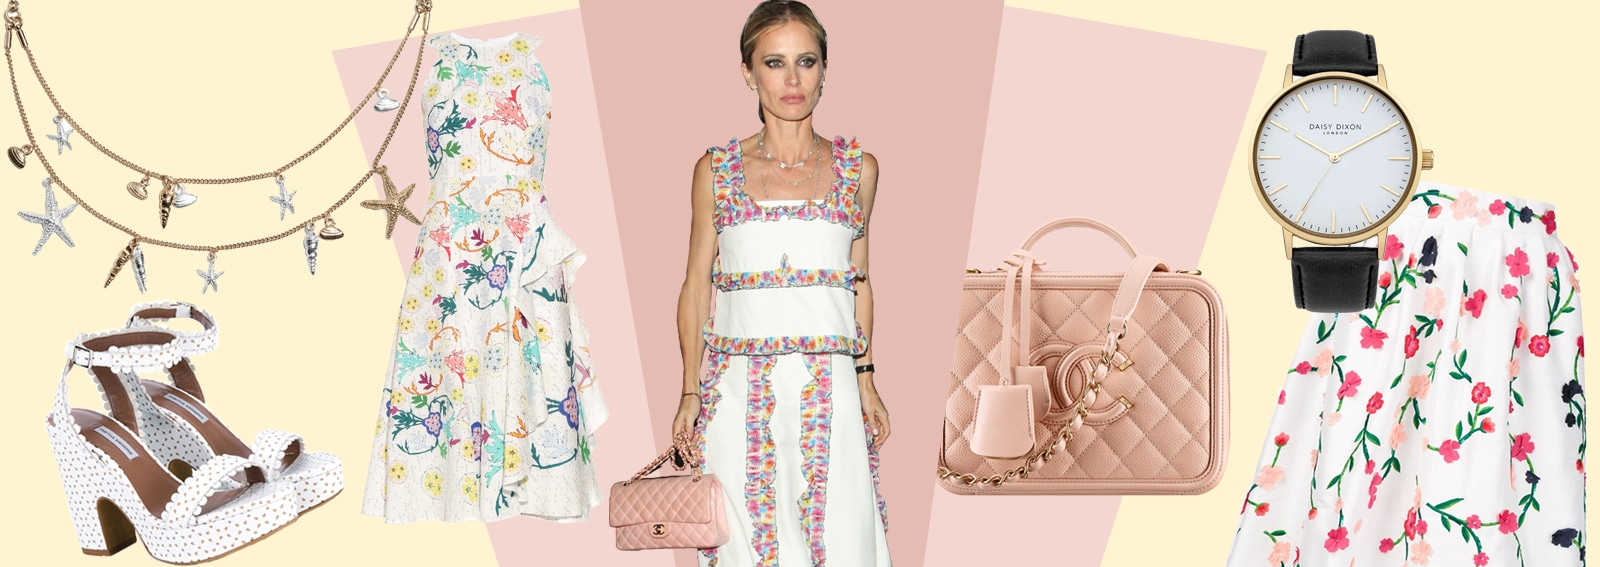 cover get the look laura bailey in chanel dekstop